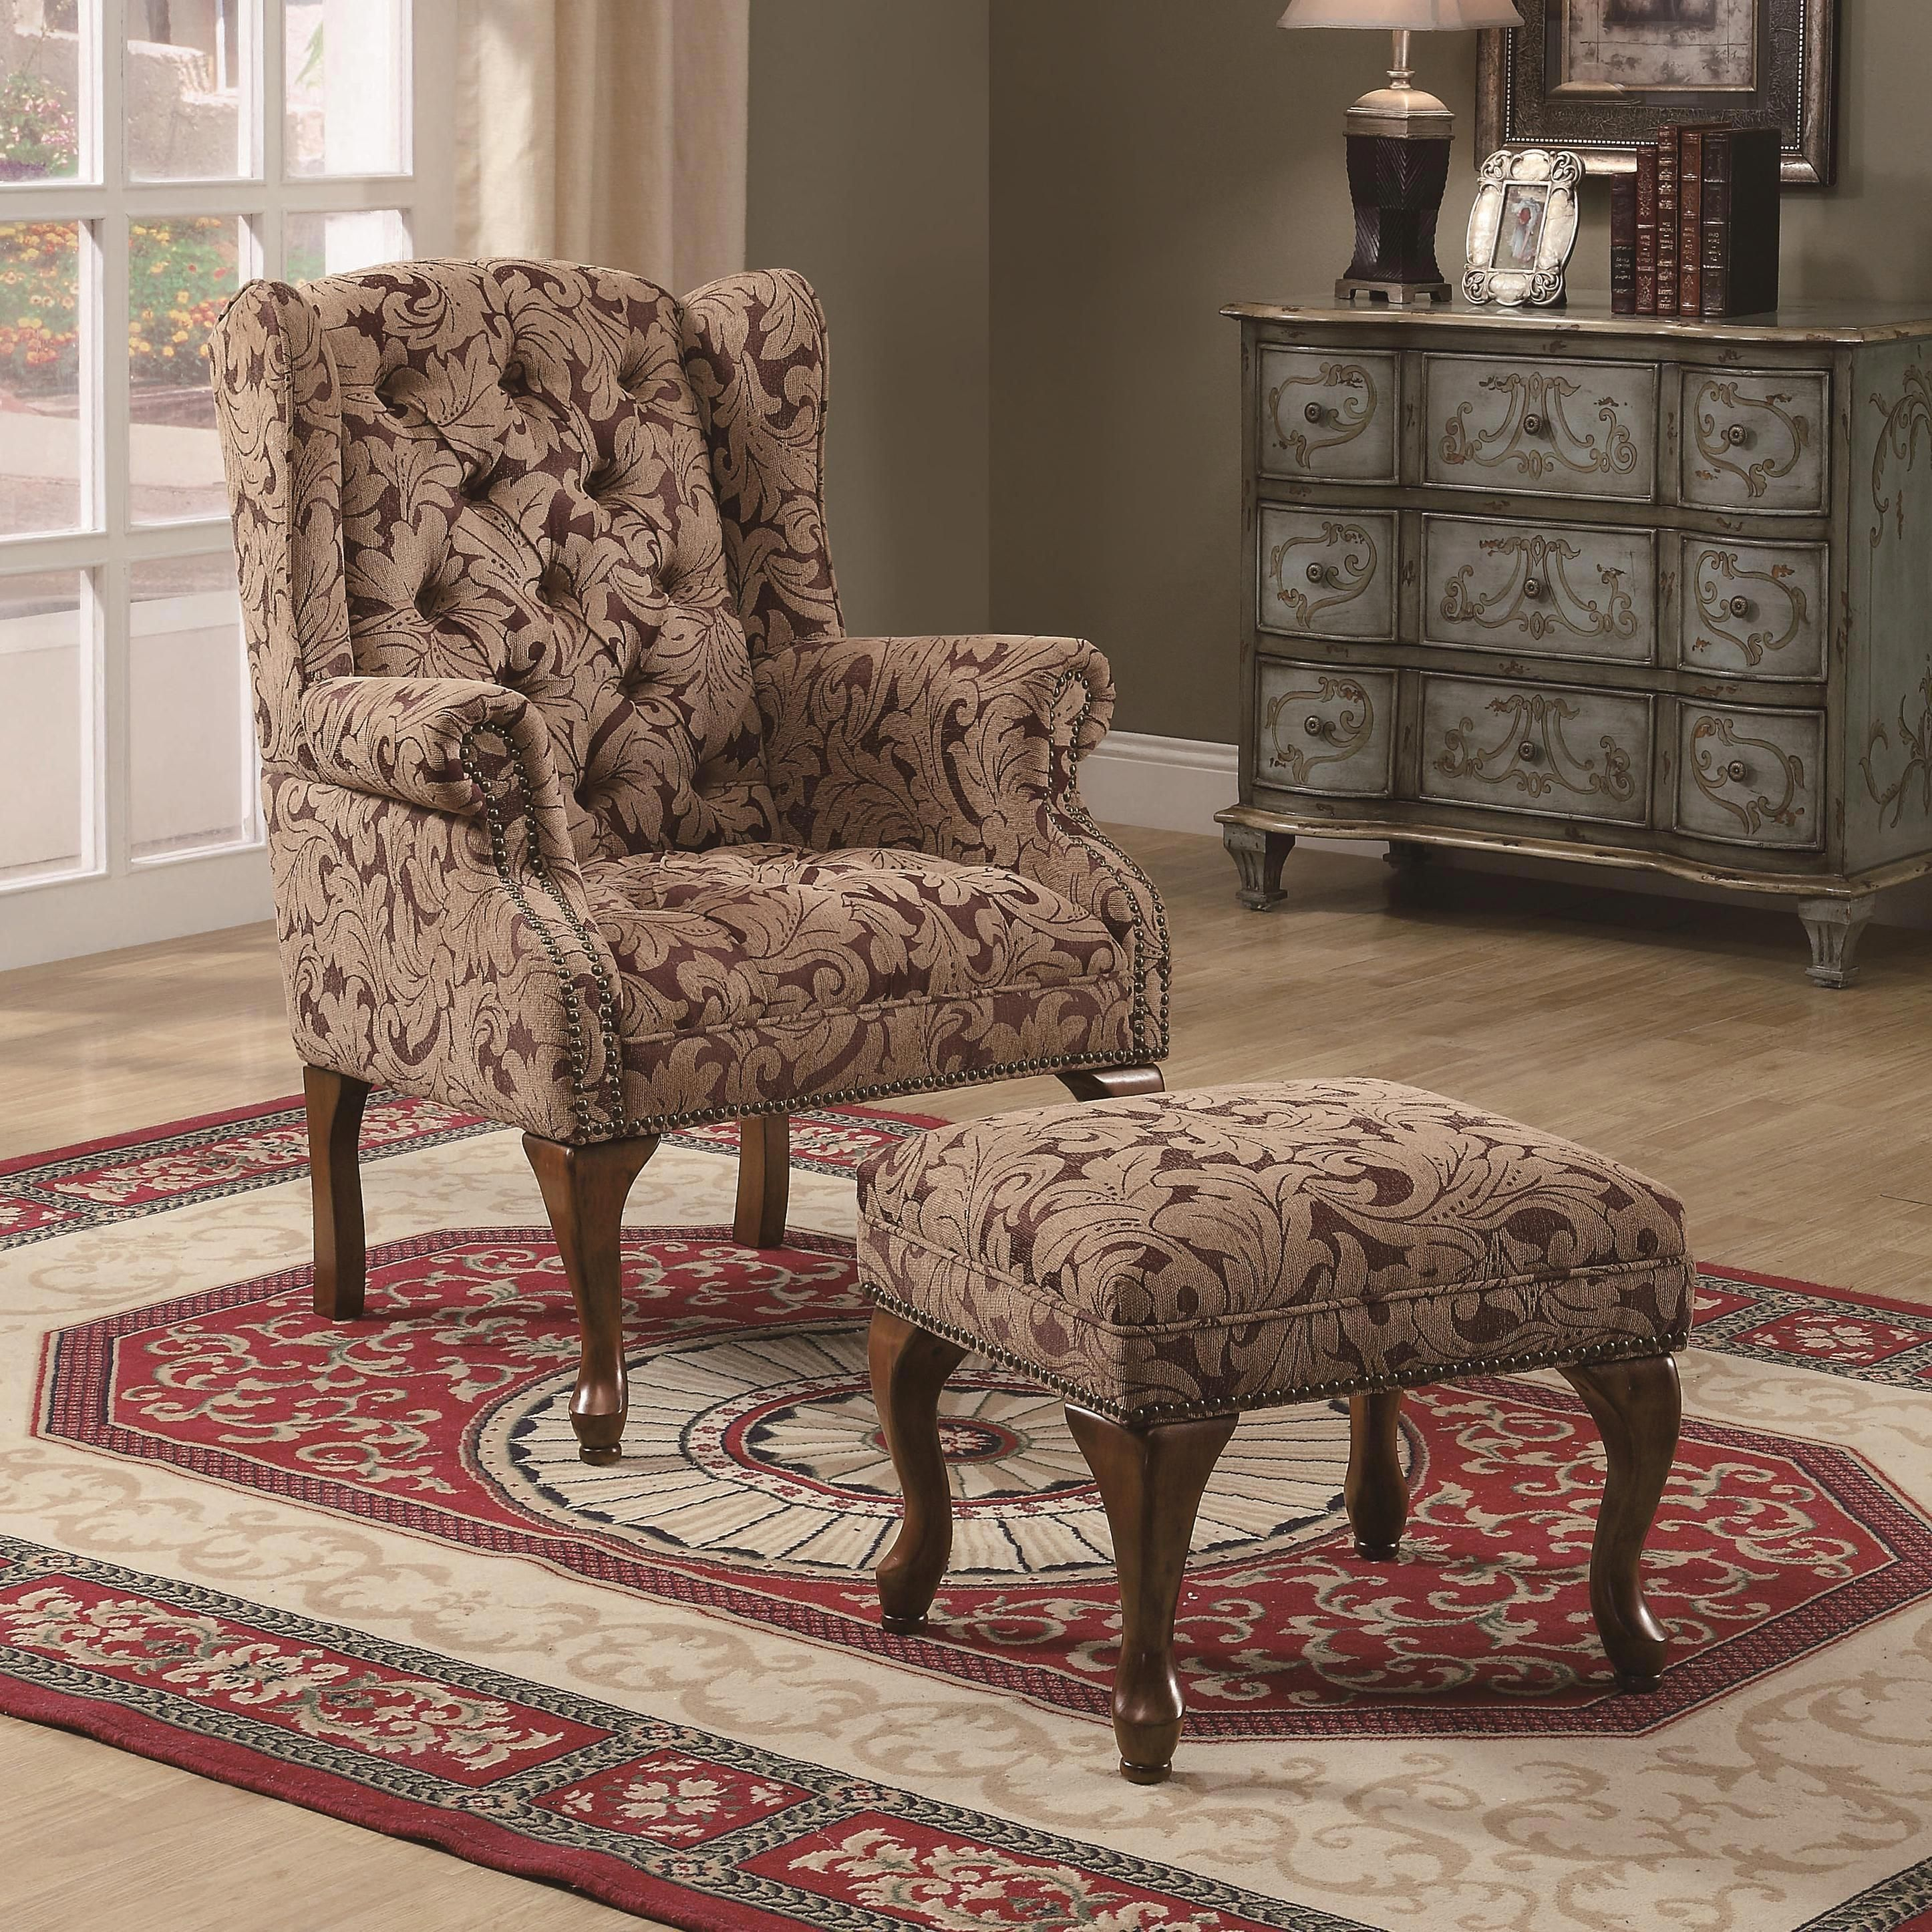 Brown Accent Chair With Ottoman Swivel Jefferson Almeria And Fabric Coasterfurniture